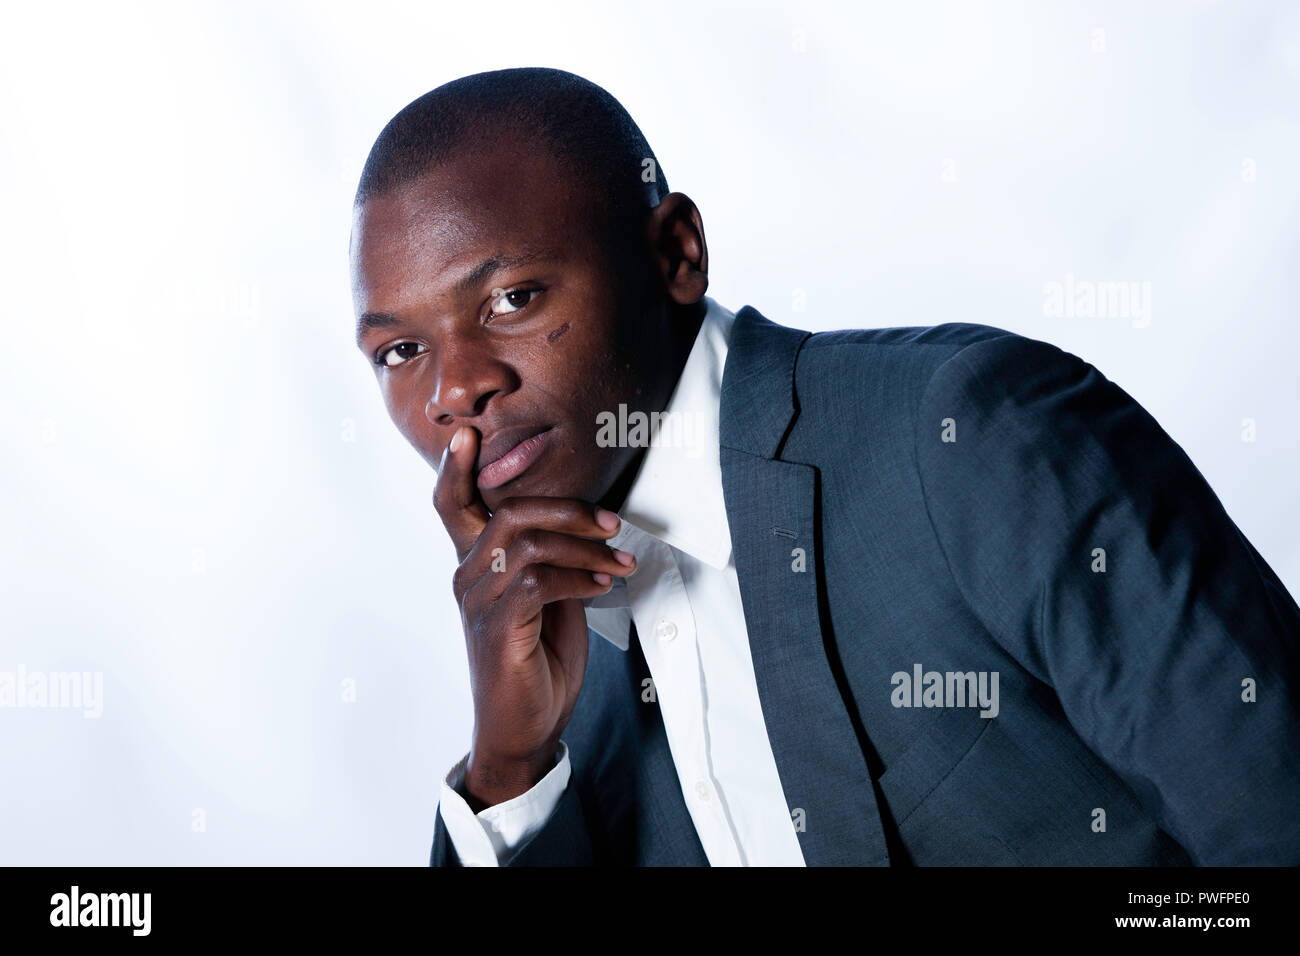 Handsome young african male wearing a business suite looking thoughtfully at the camera with his hand at his chin. White background - Stock Image